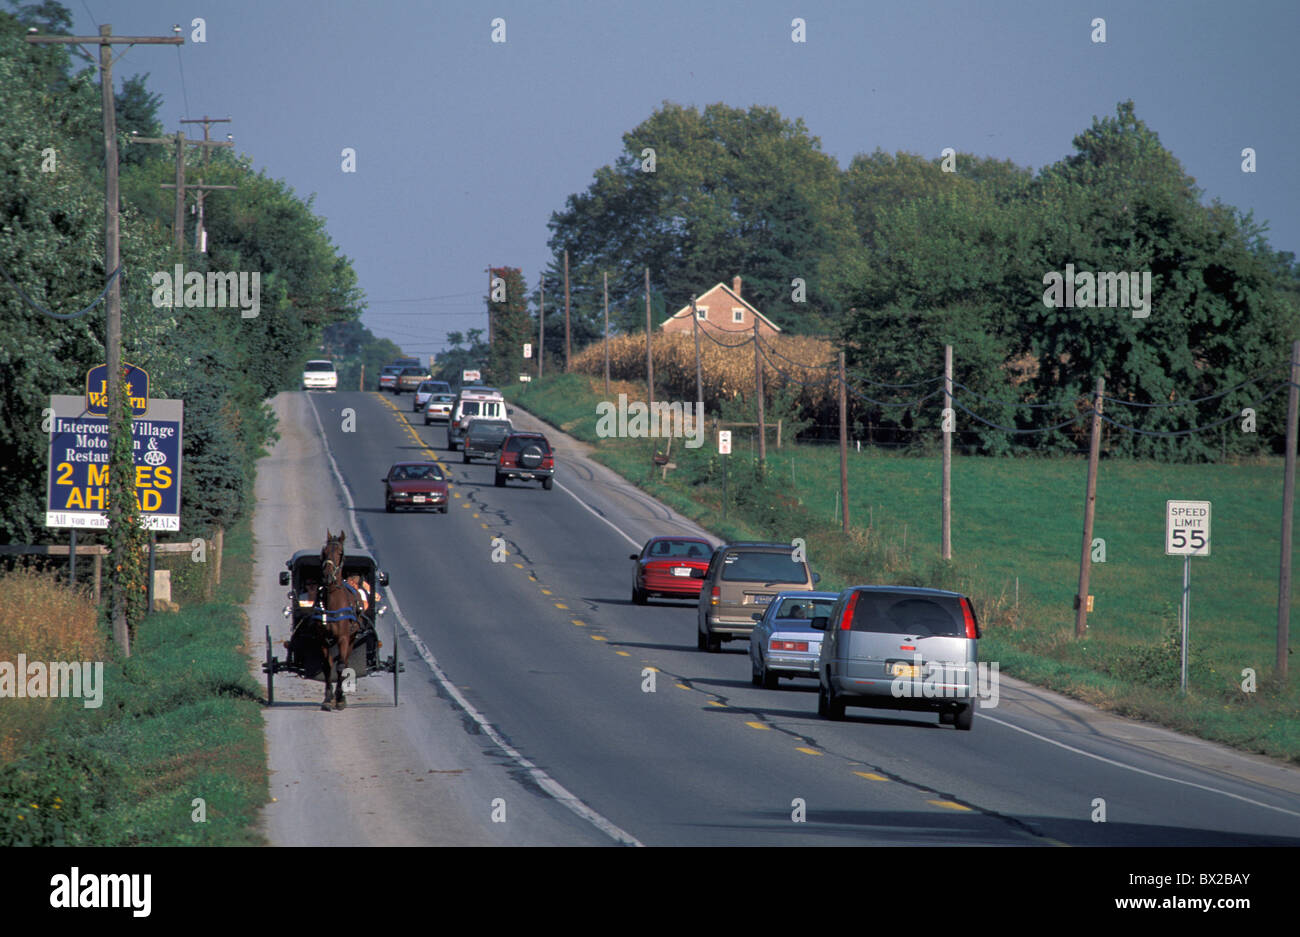 old fashioned Amish coach horse coach horse street passenger cars contrast opposition contrasts oppositions - Stock Image